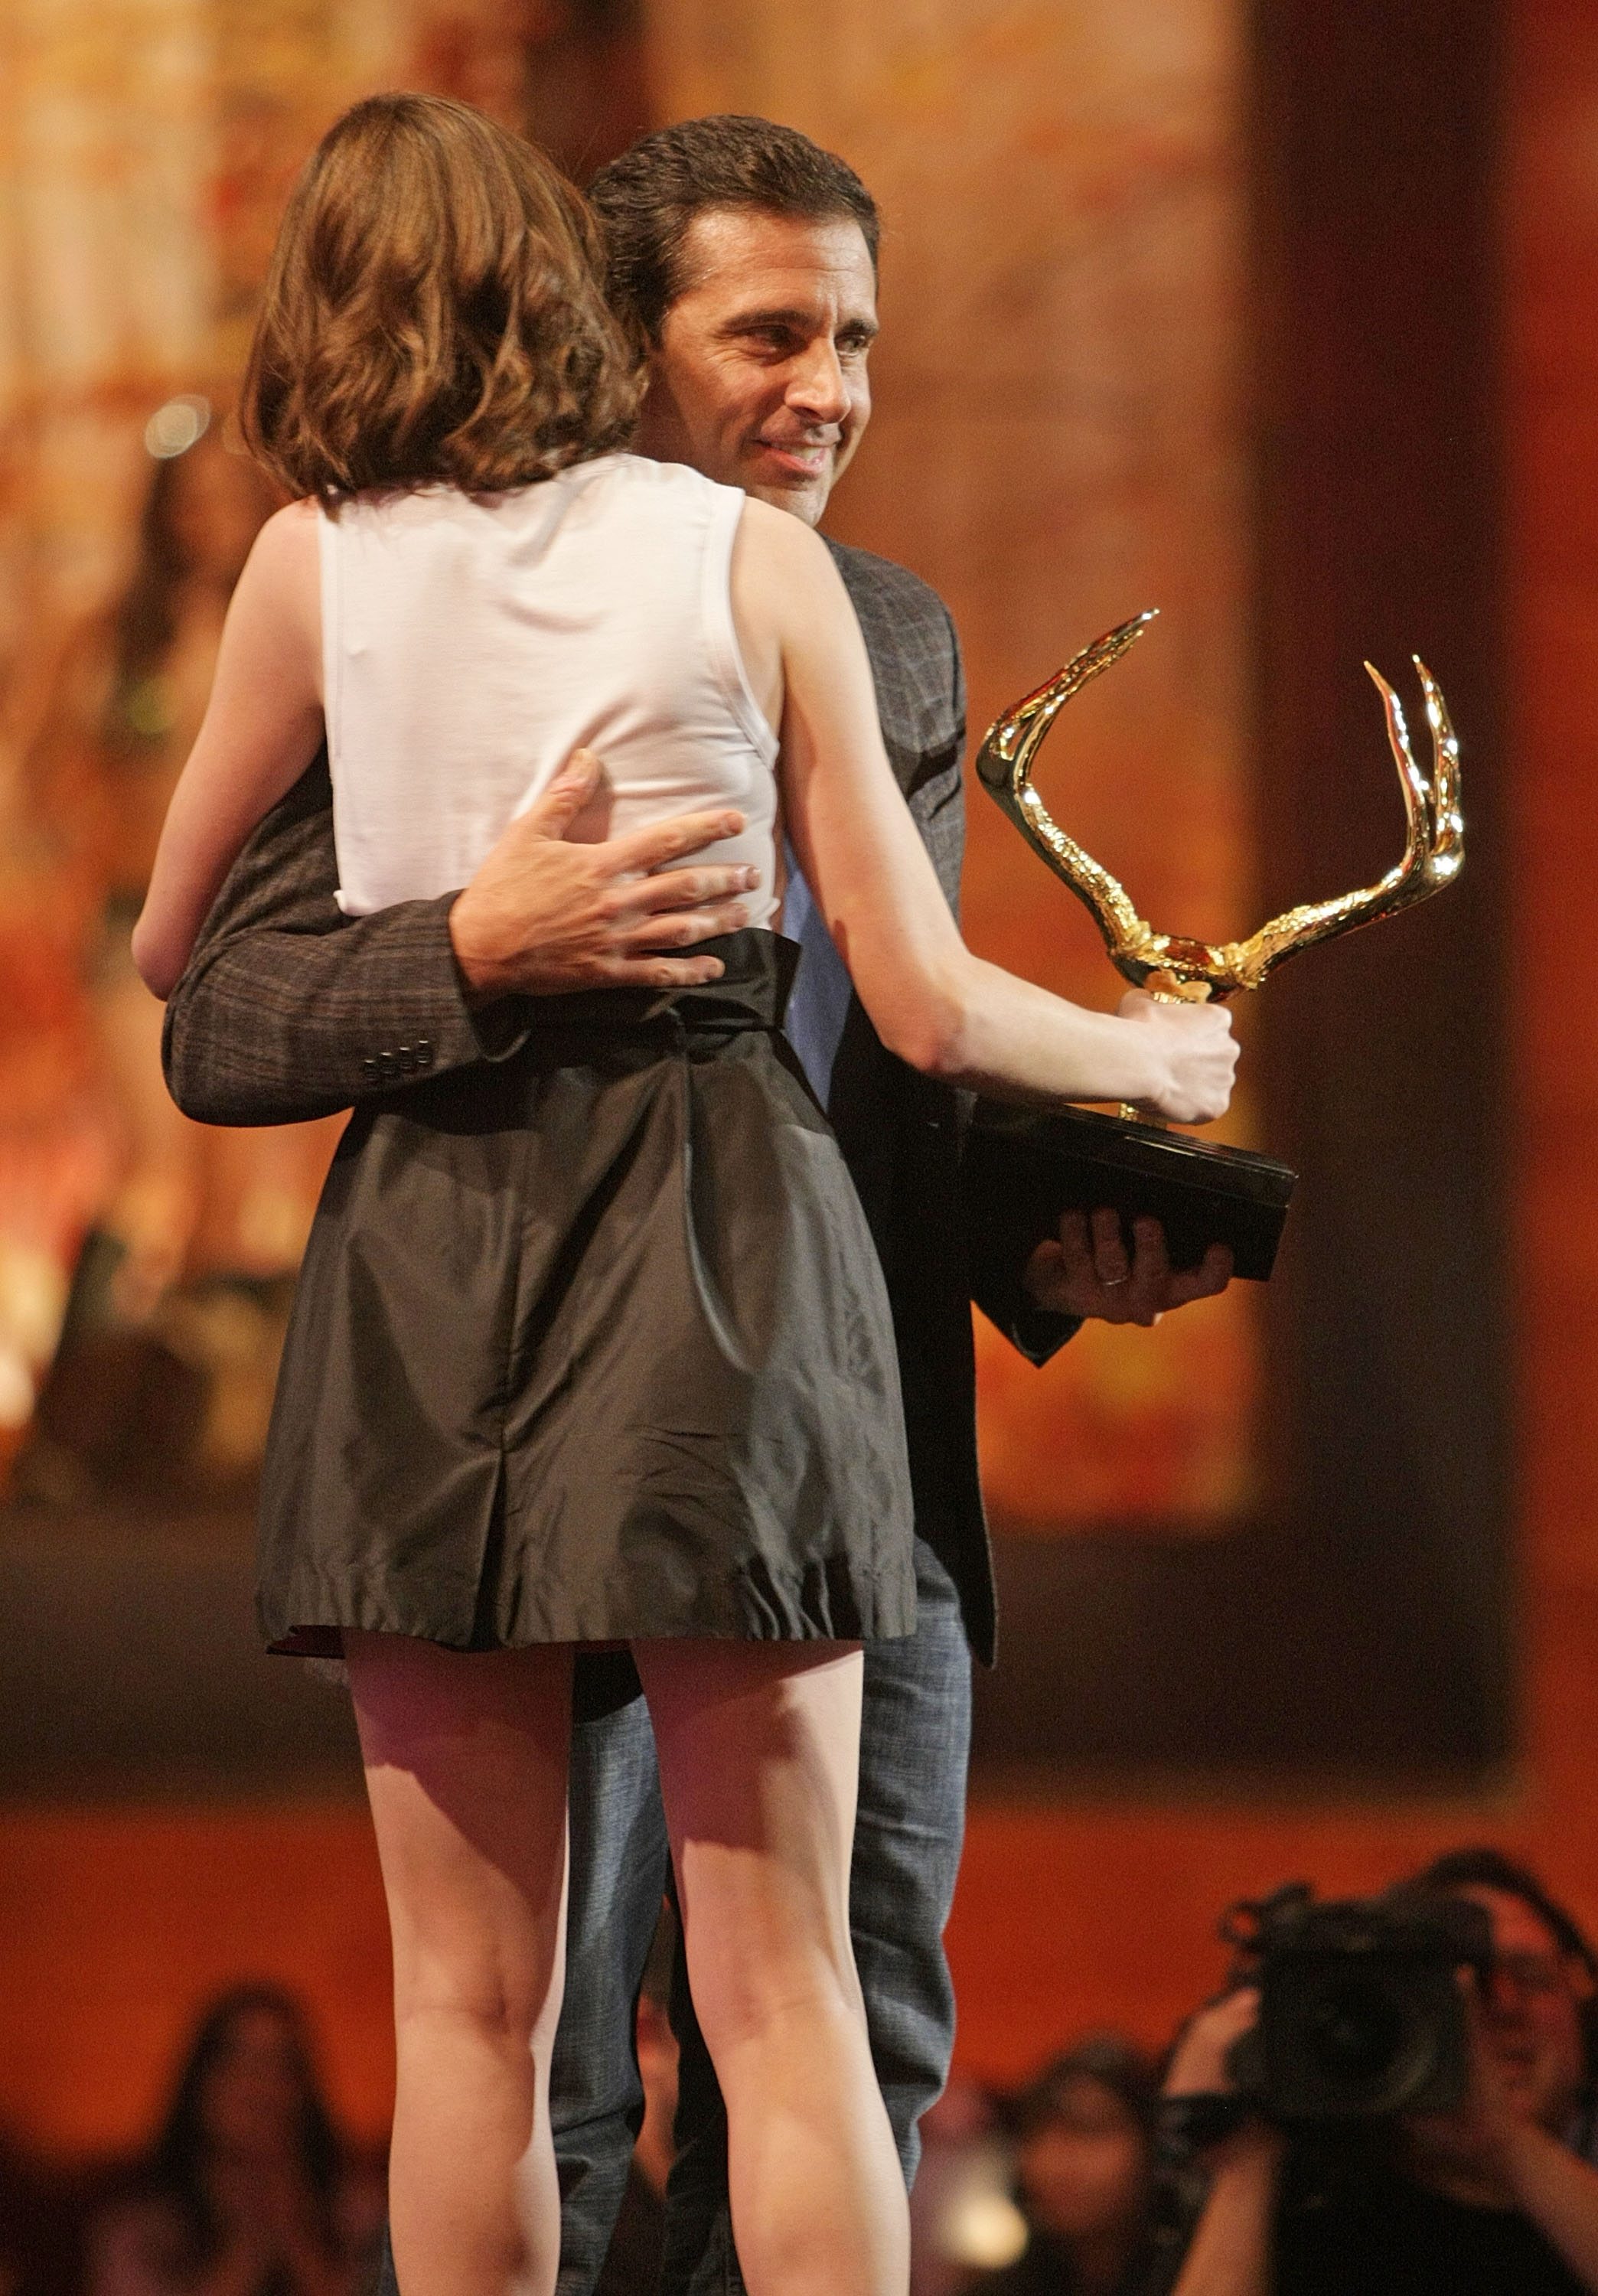 23581_Celebutopia-Anne_Hathaway-Spike_TV27s_2nd_Annual_Guys_Choice_Awards_Show-04_122_462lo.jpg